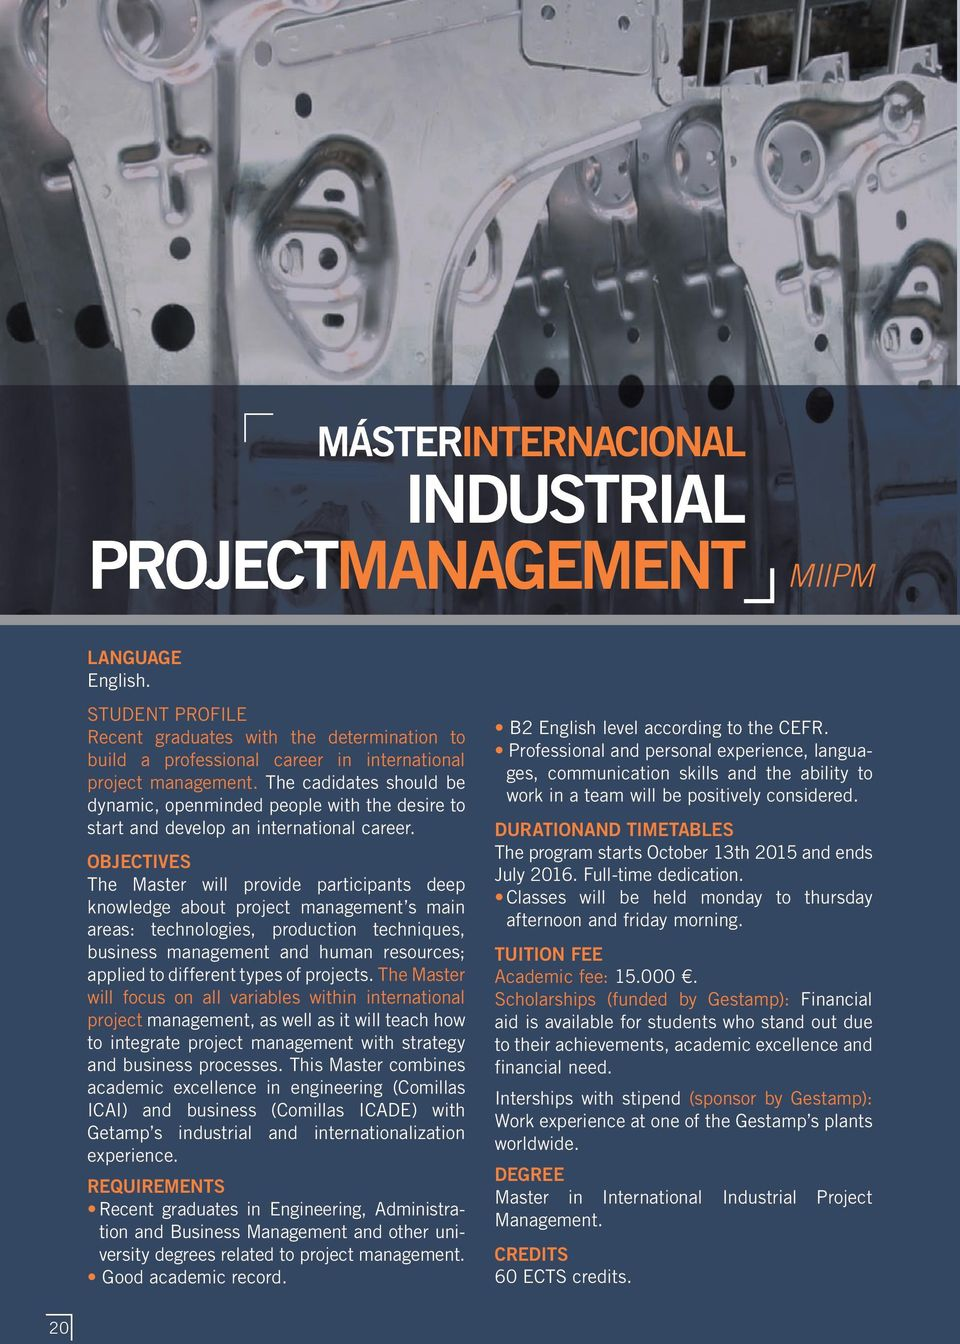 OBjectiVES The Master will provide participants deep knowledge about project management s main areas: technologies, production techniques, business management and human resources; applied to